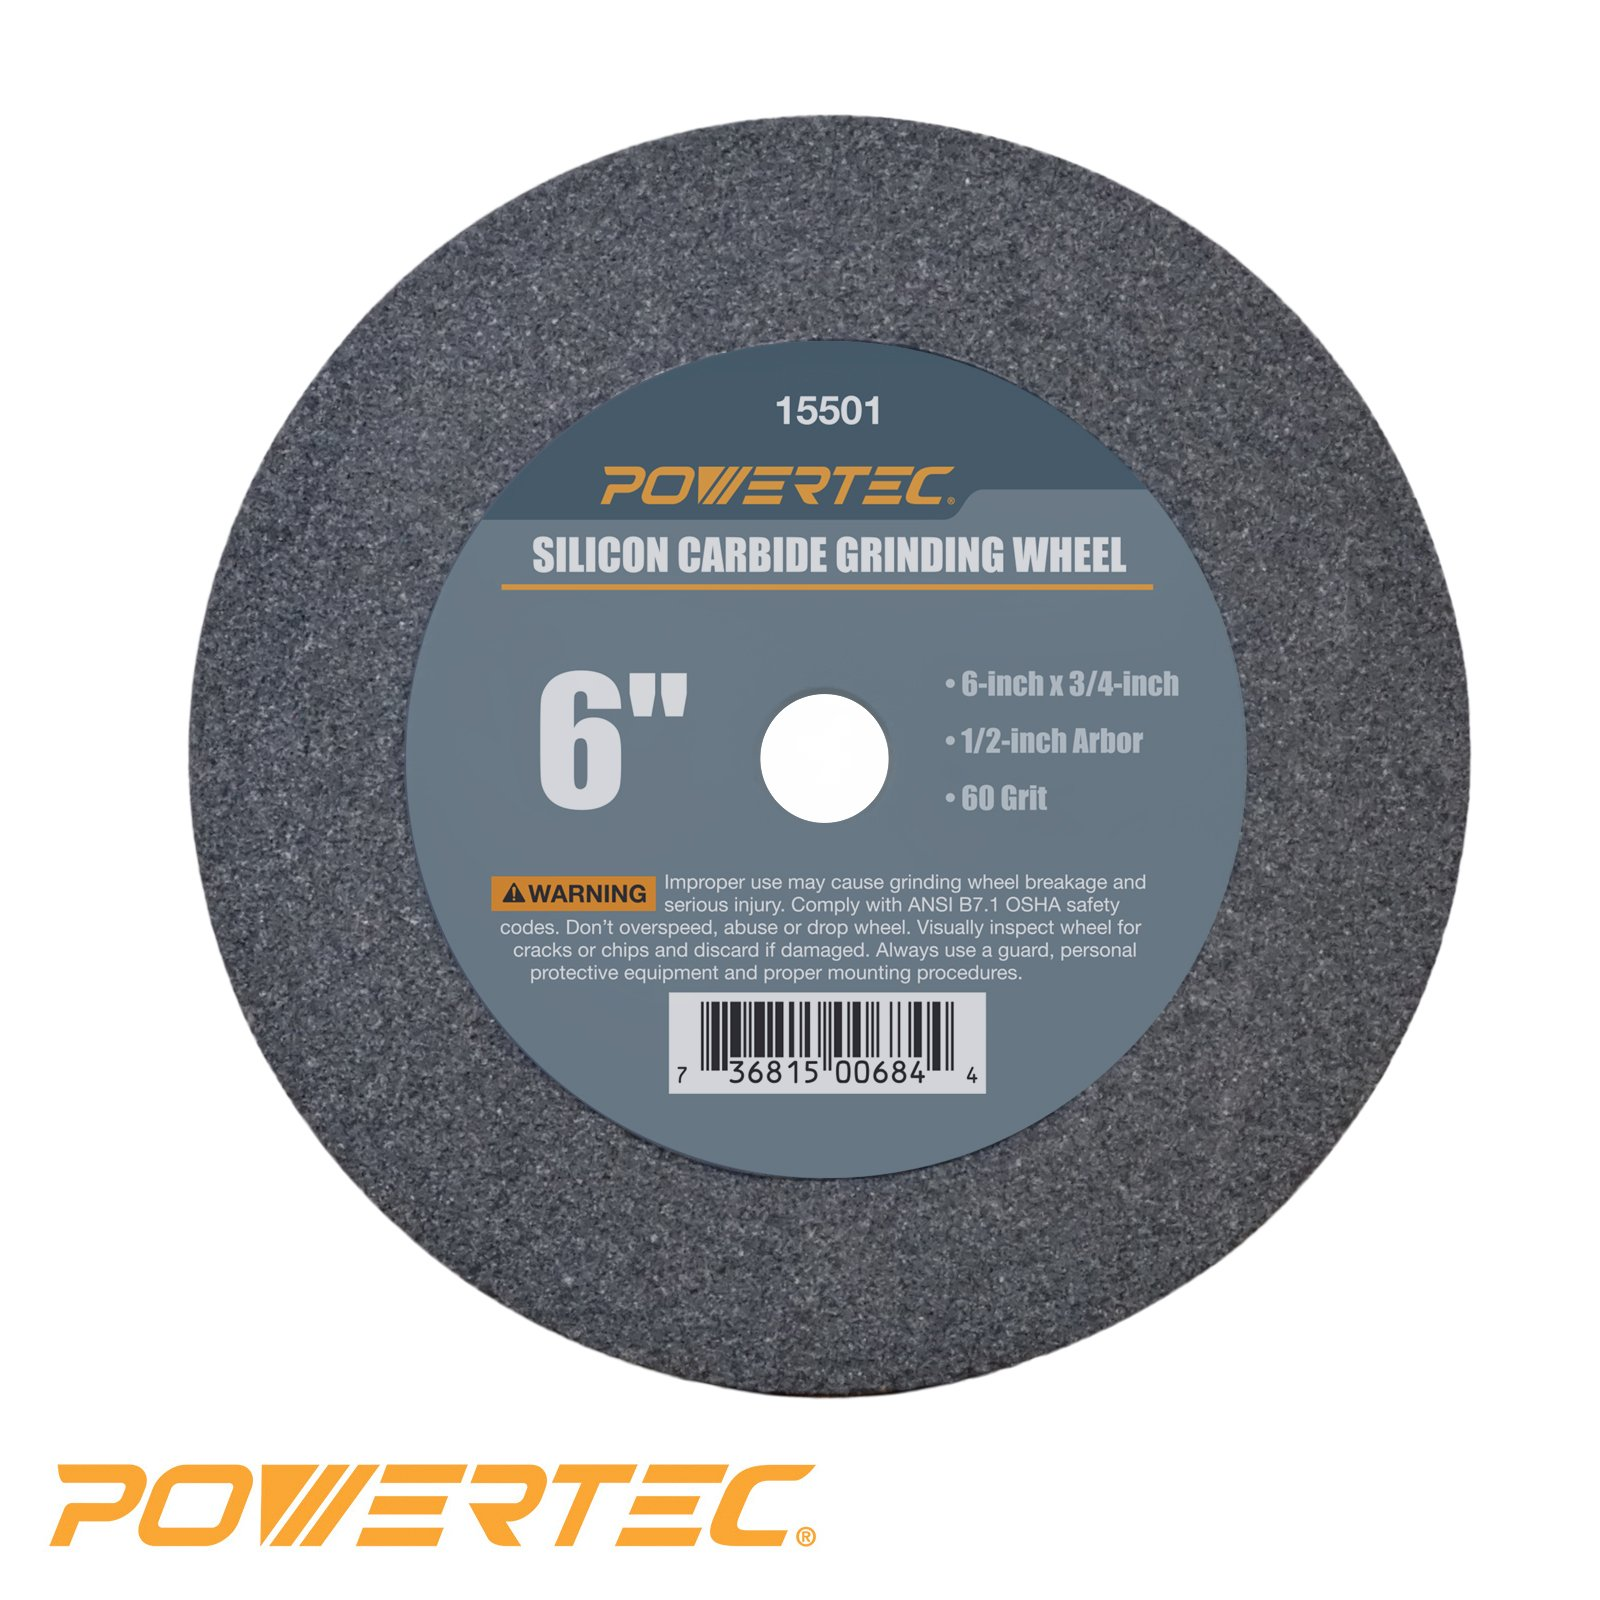 POWERTEC 15501 1/2'' Arbor 60-Grit Silicon Carbide Grinding Wheel, 6'' by 3/4''